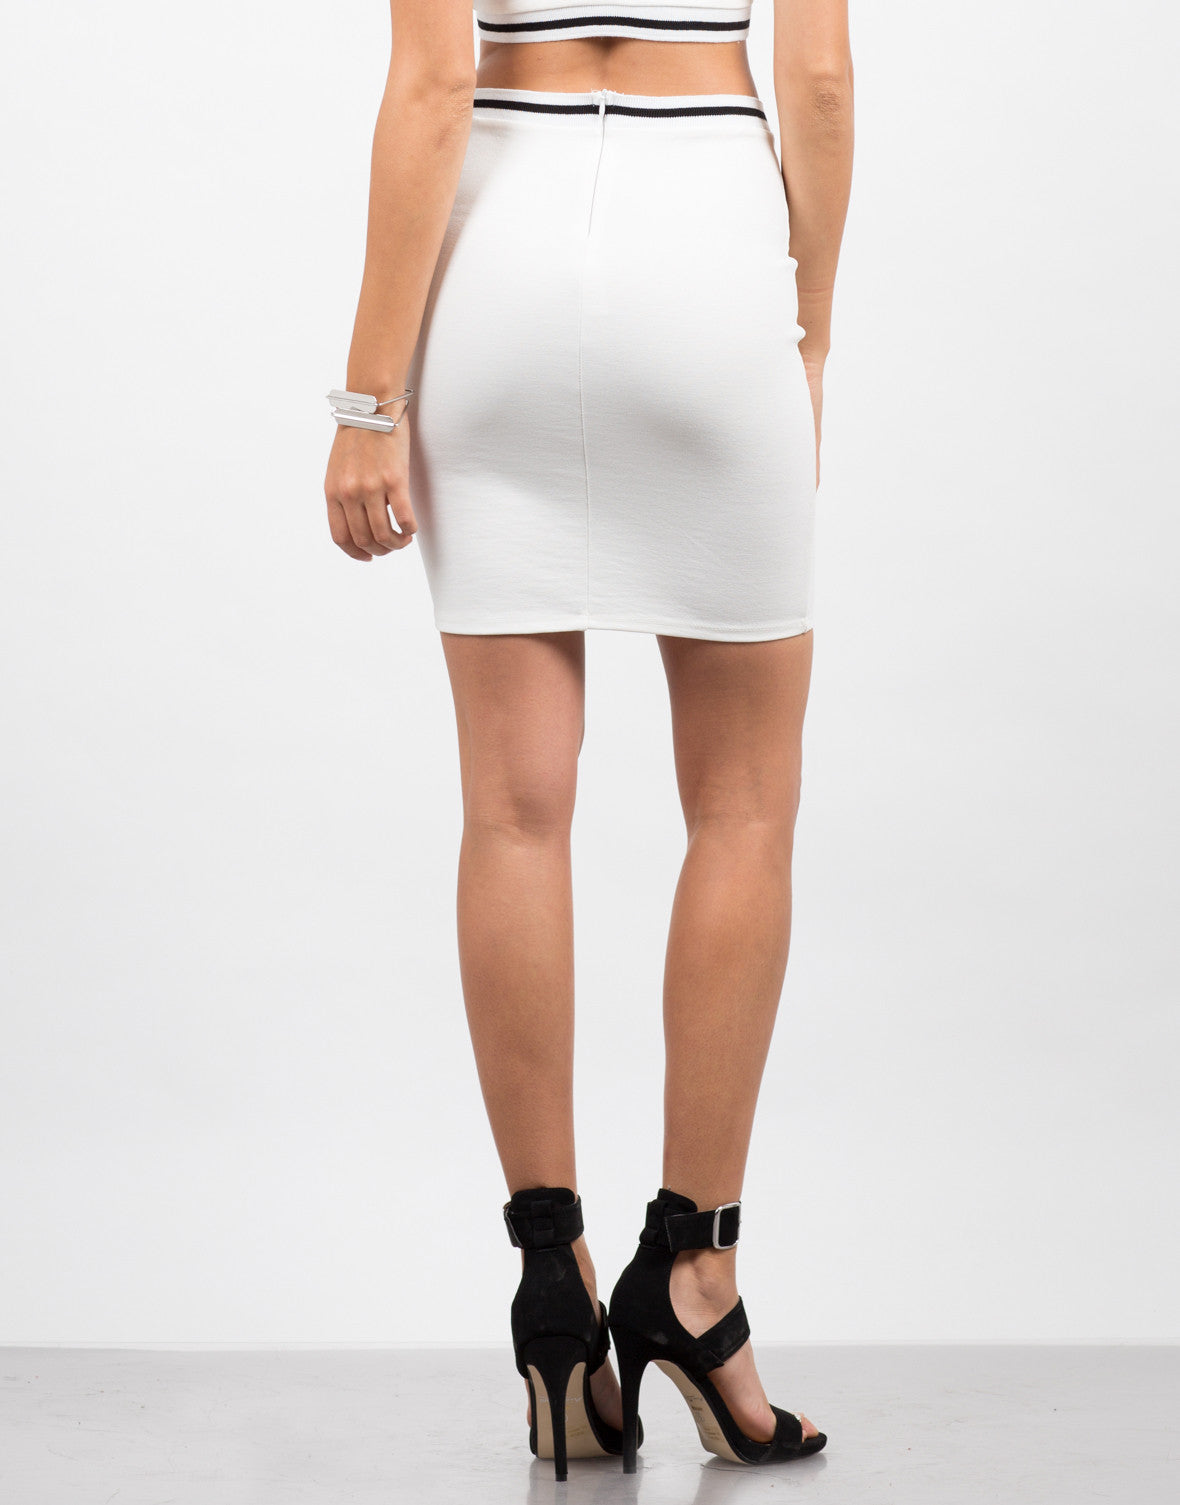 Back View of Sporty Bodycon Skirt